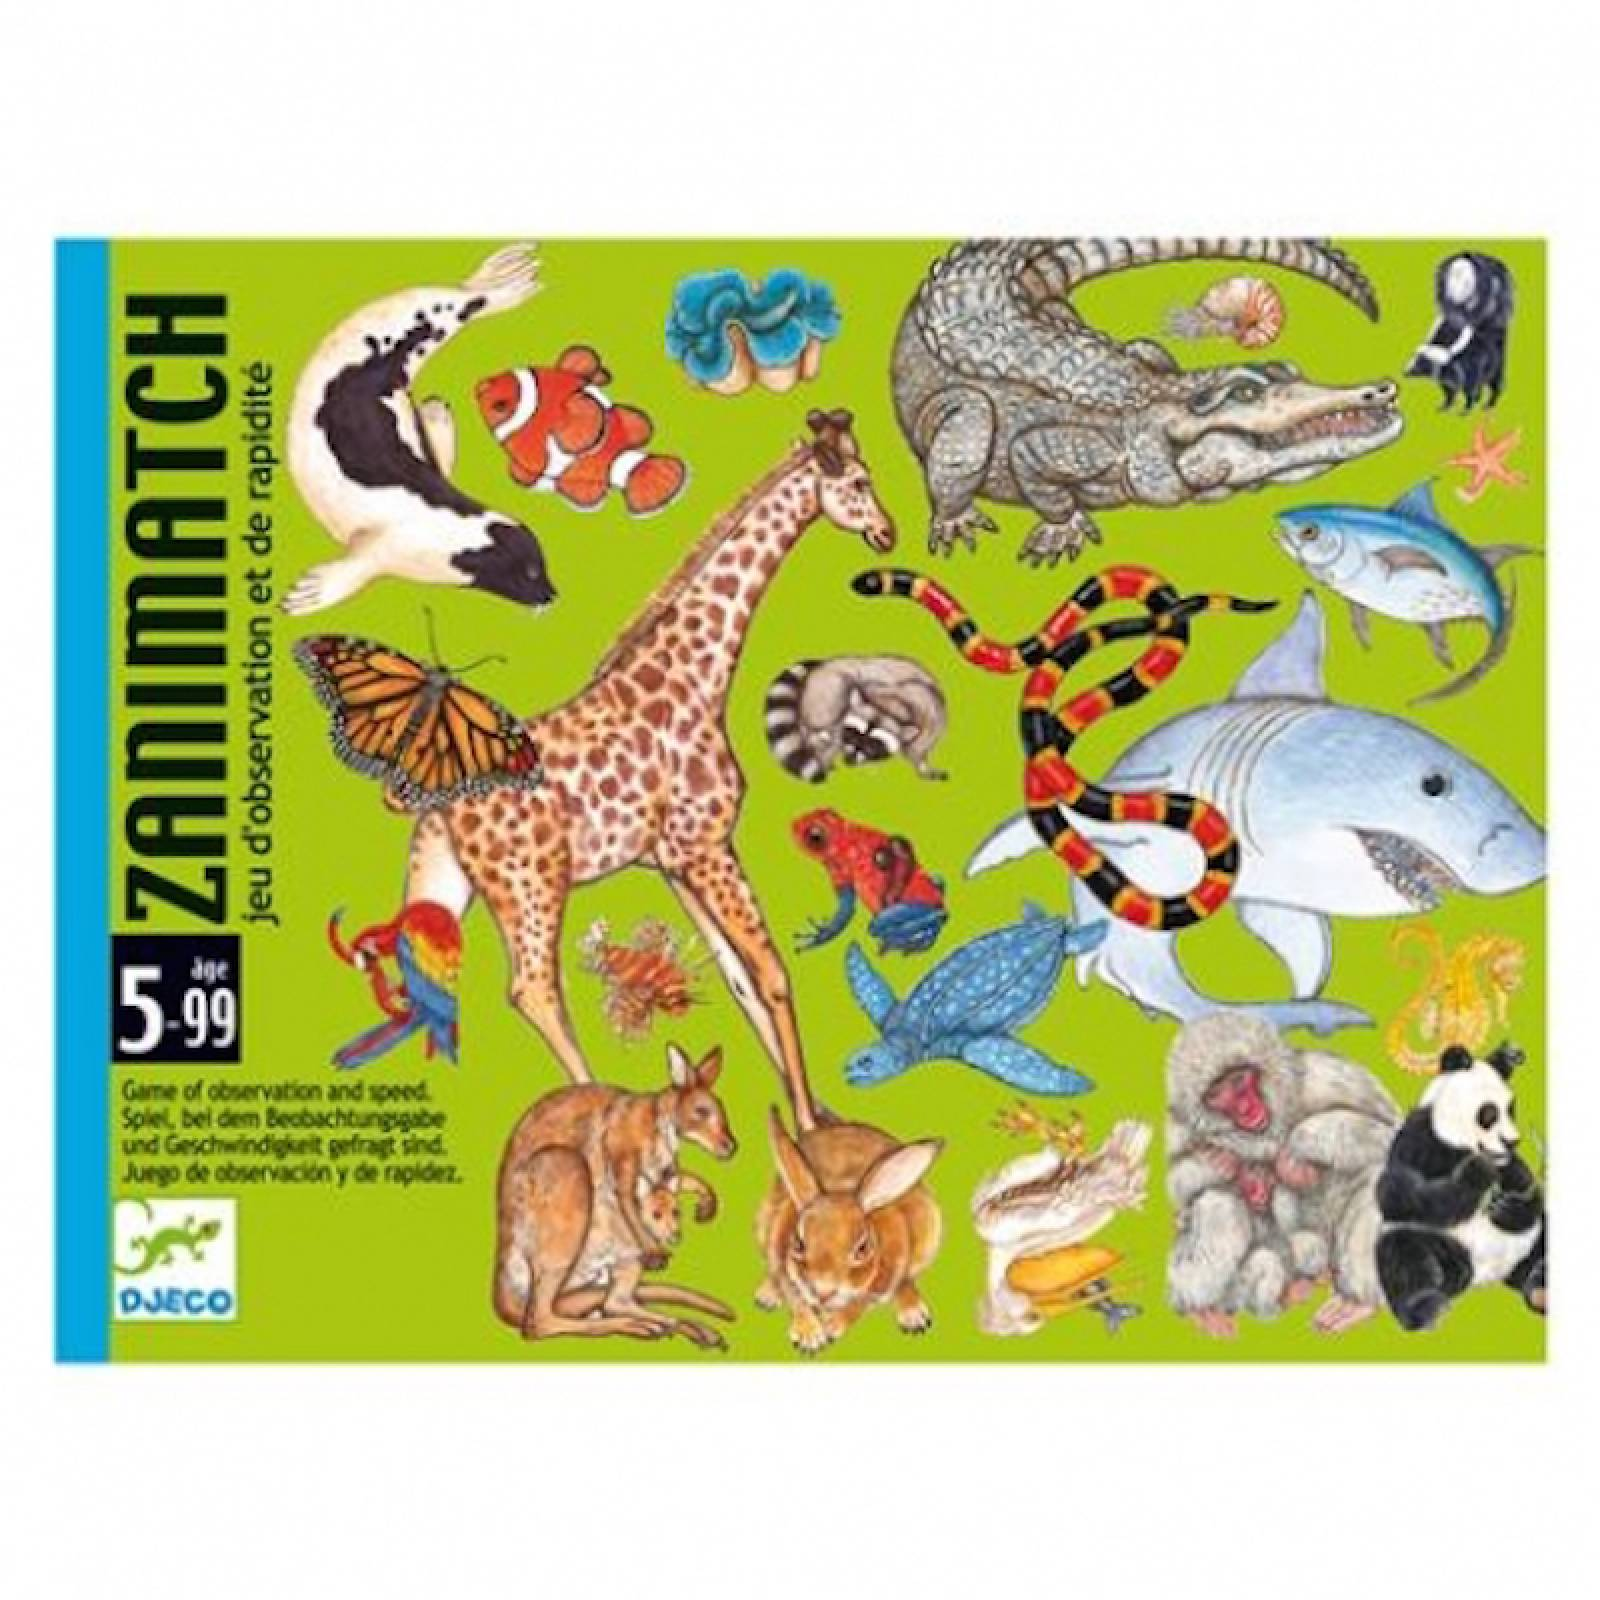 Zanimatch Card Game -Speed & Focus Animal Matching Game 5-99